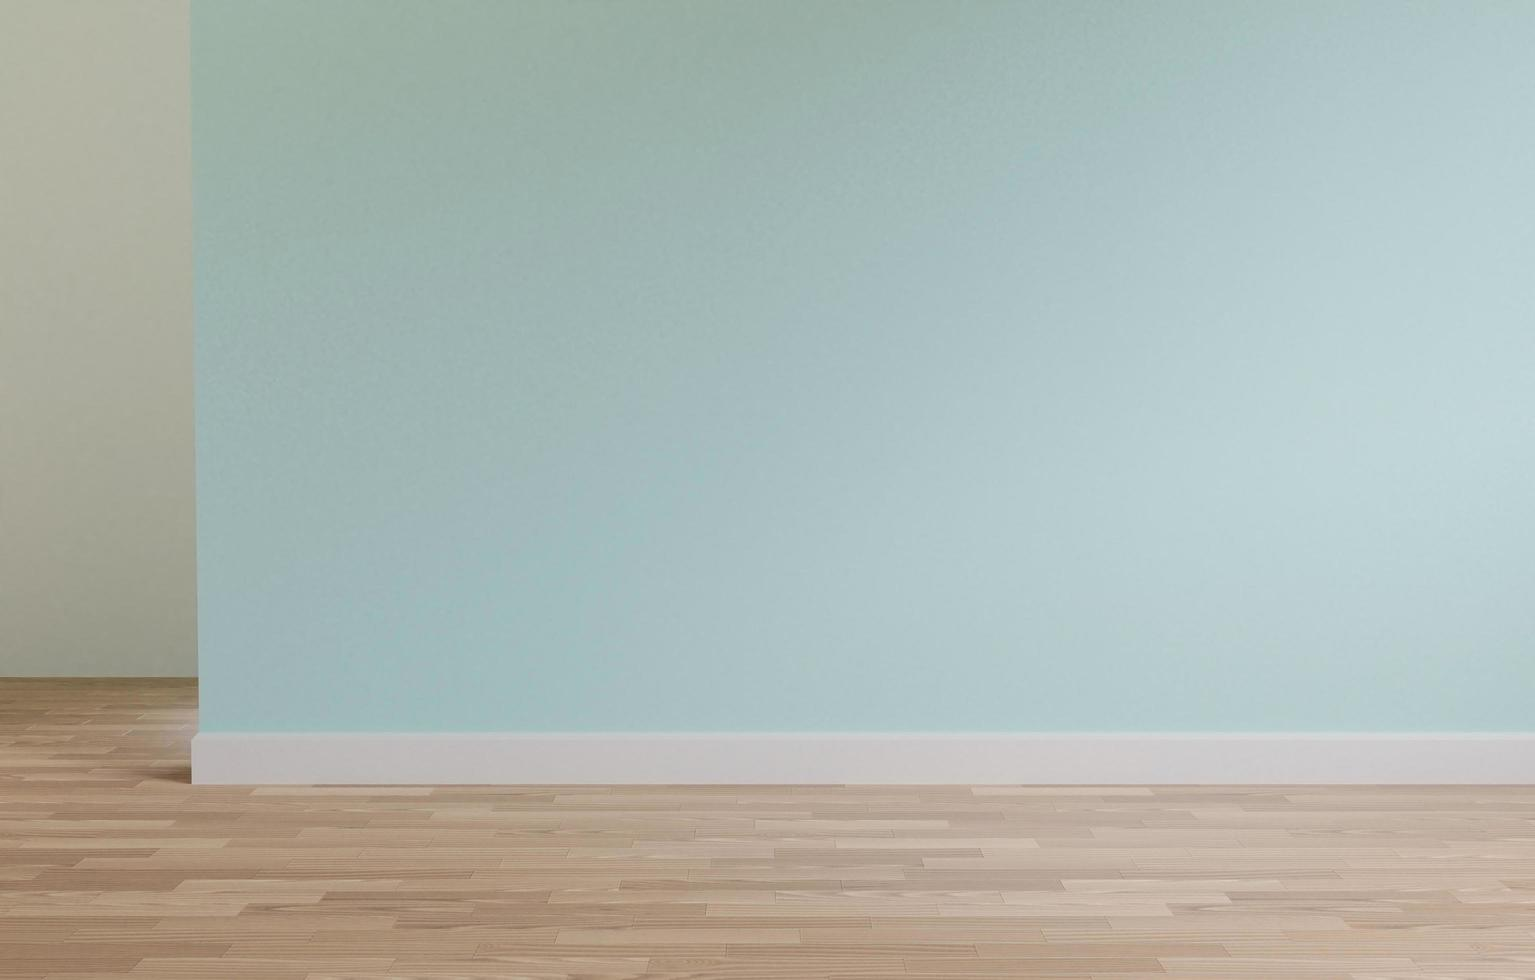 Green wall and wooden floor 3D rendering photo